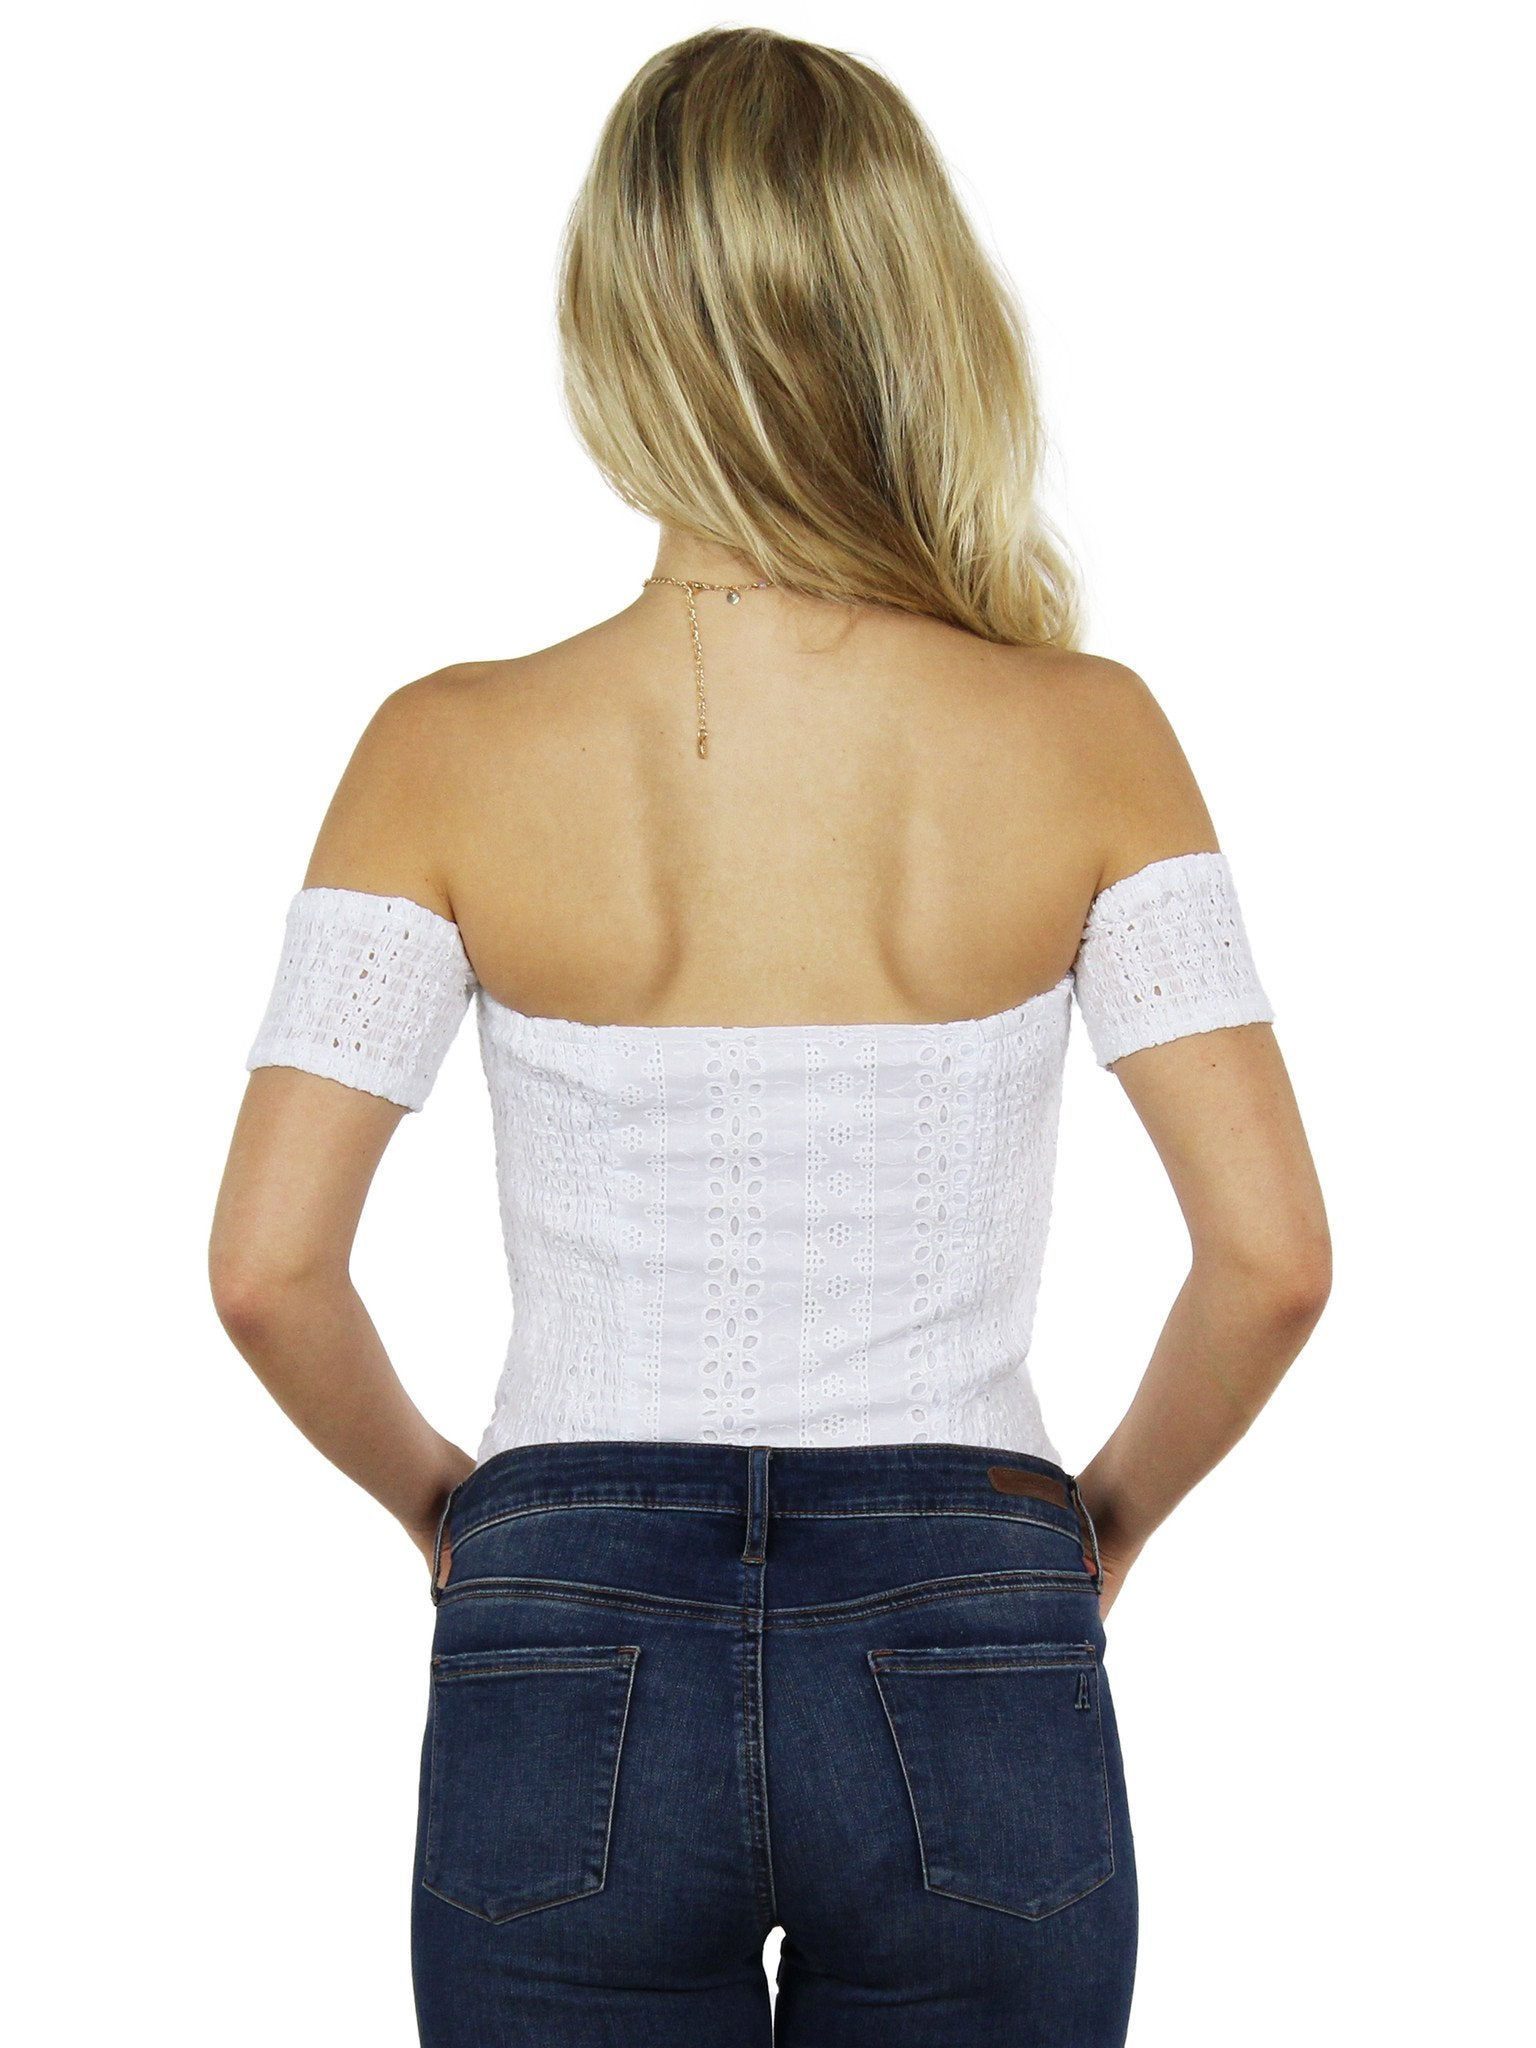 Women wearing a top rental from J.O.A. called Off Shoulder Eyelet Bodysuit